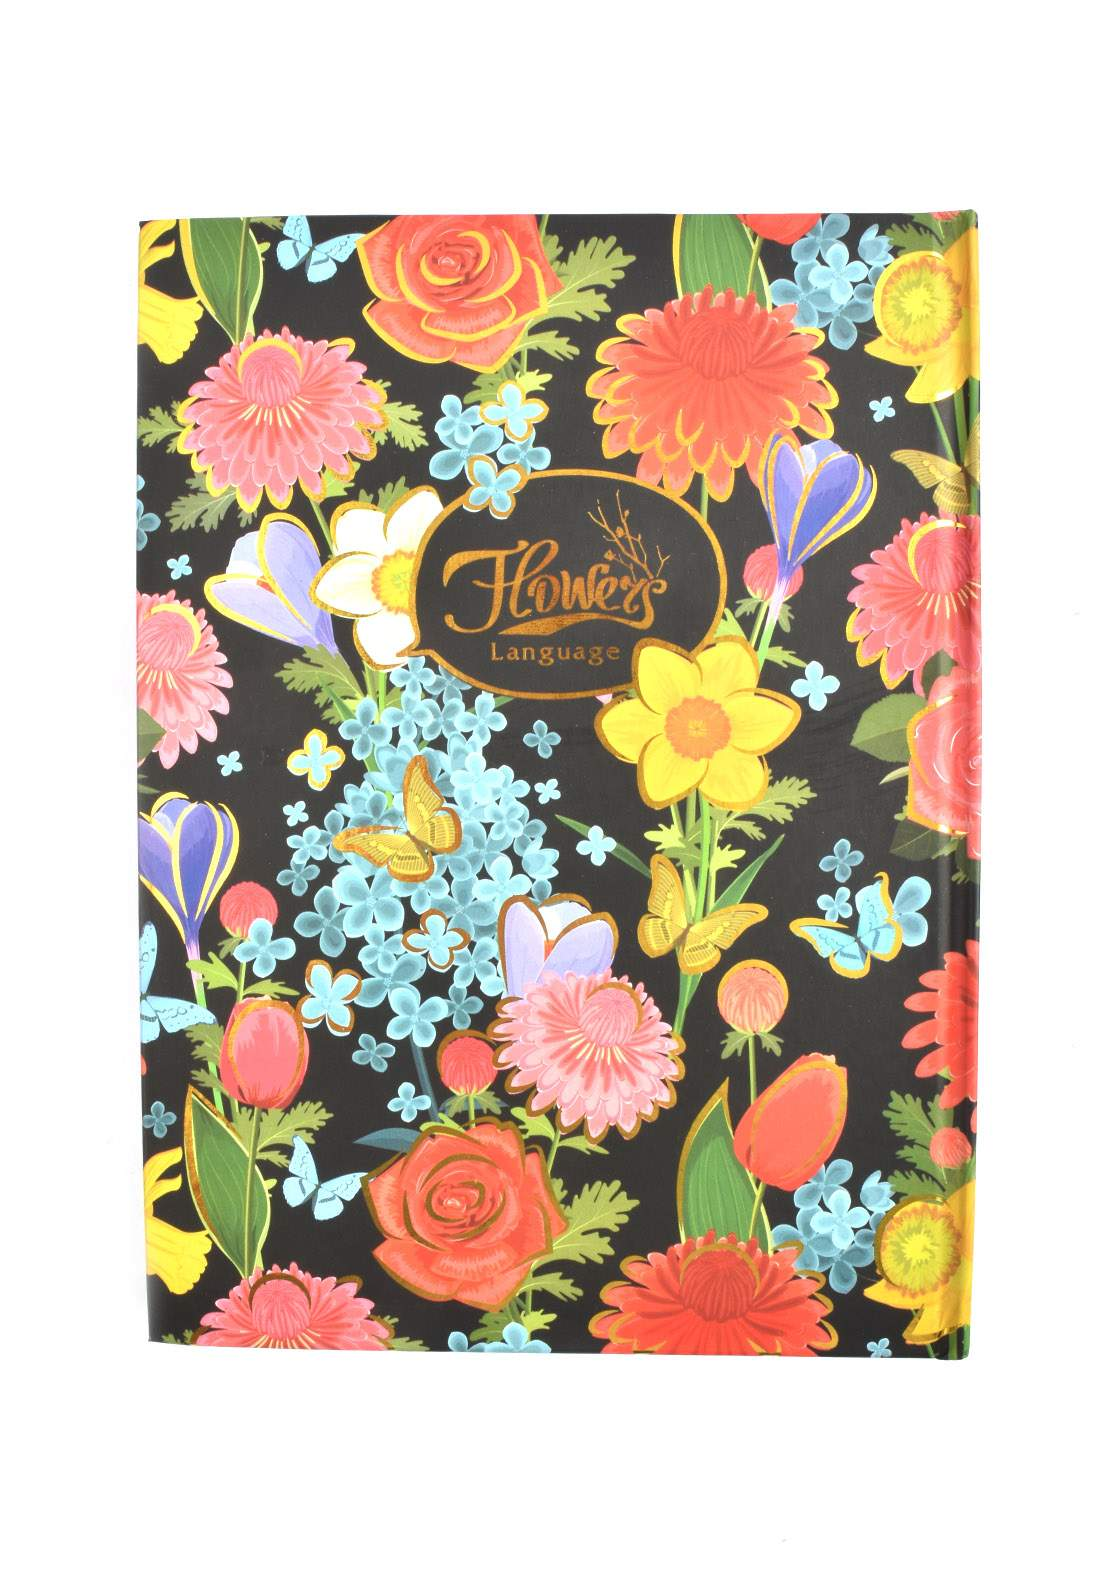 Arabic Cardboard Note Book With A Drawing - Colored Flower - 200 Sheets دفتر  200 ورقة